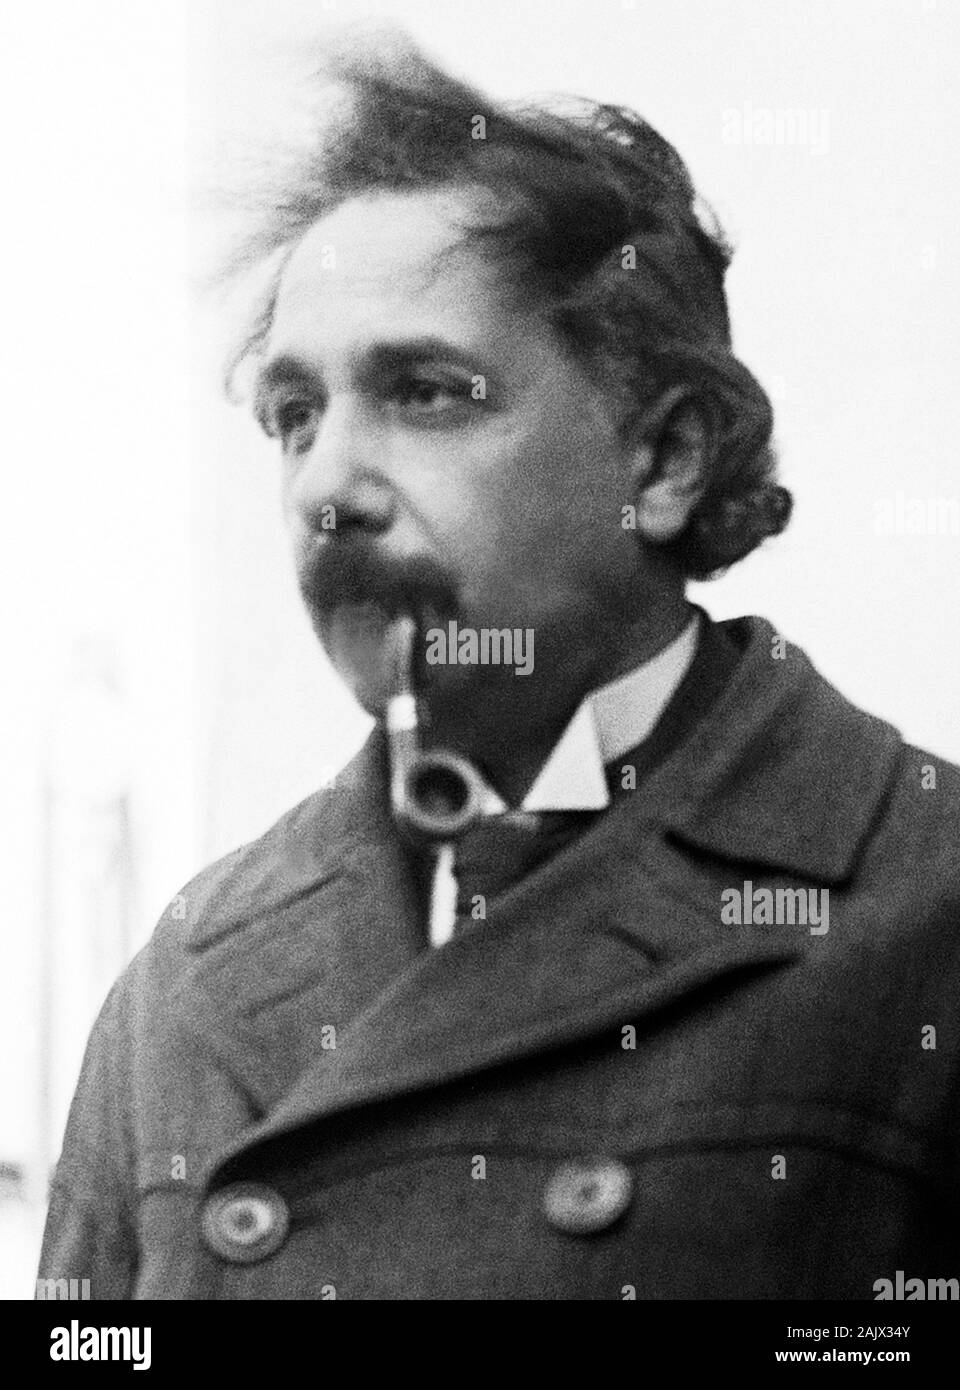 Vintage photo of theoretical physicist Albert Einstein (1879 – 1955). Photo by Bain News Service taken in April 1921 on his arrival in New York. Stock Photo